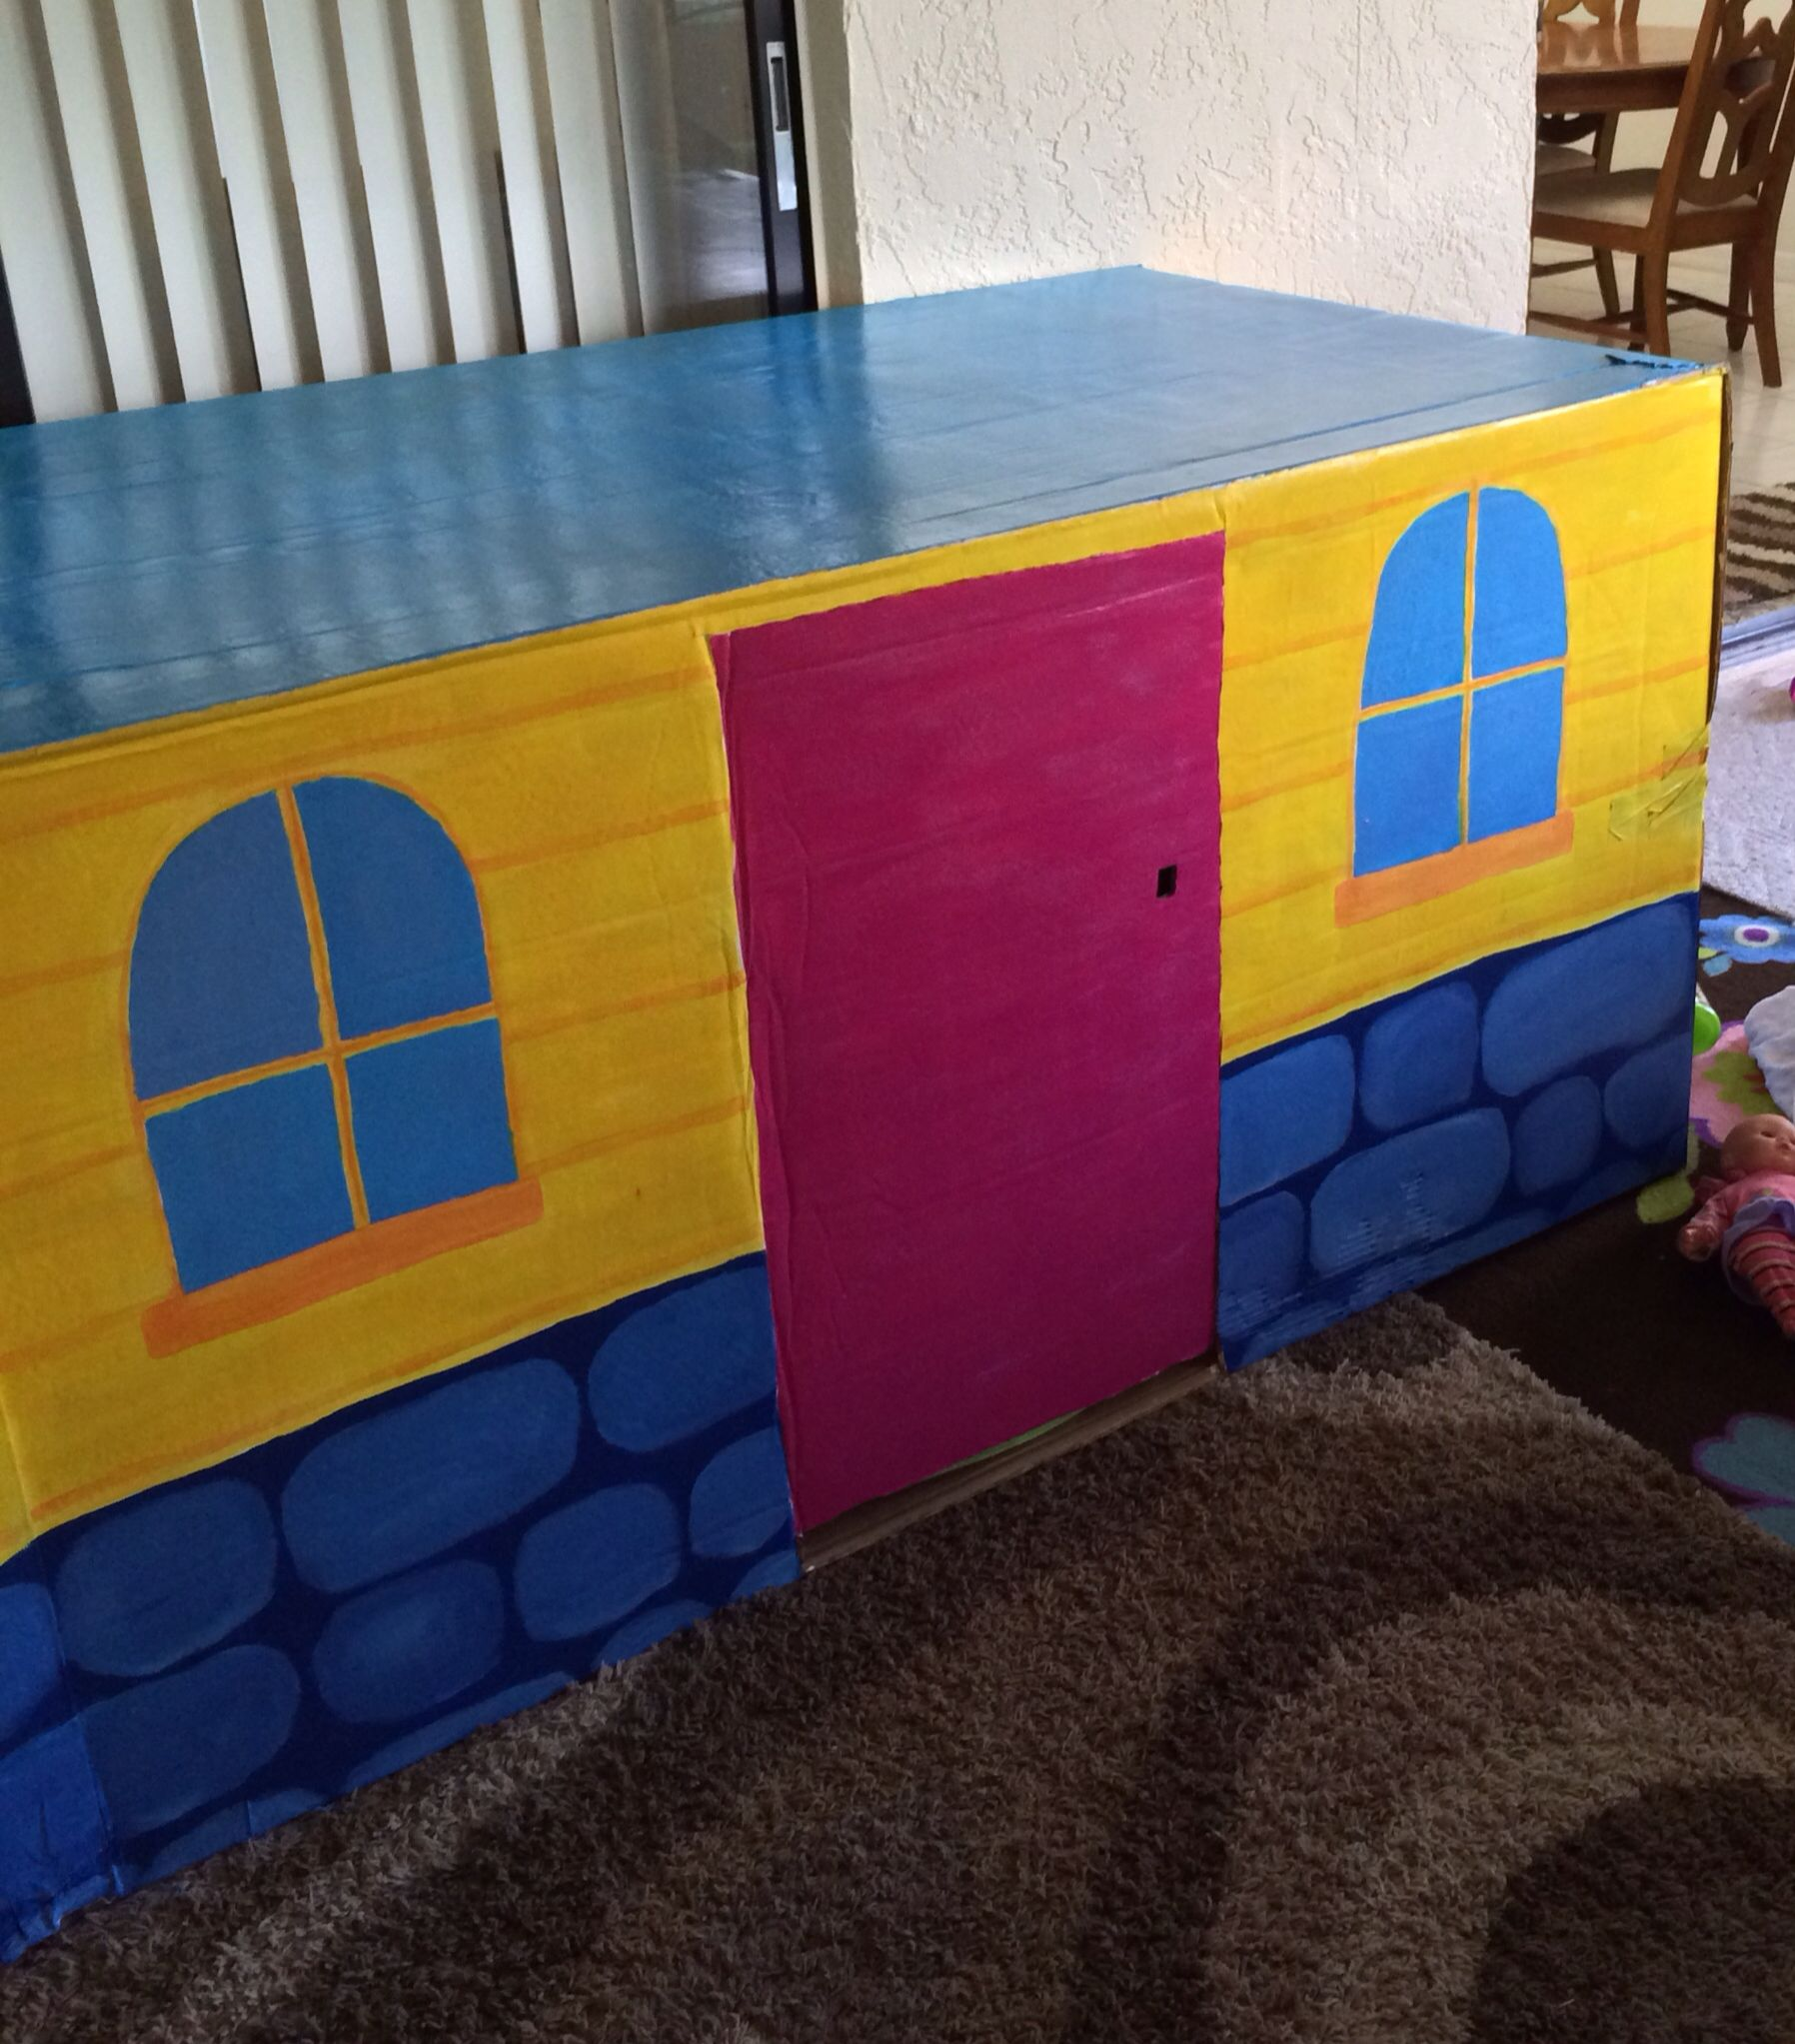 Doc Mcstuffins Playhouse Clinic Made Out Of A Refrigerator Box And Acrylic Paint It S A Big Hit With The Kids They Ve Been Doing A Lot Of Check Ups